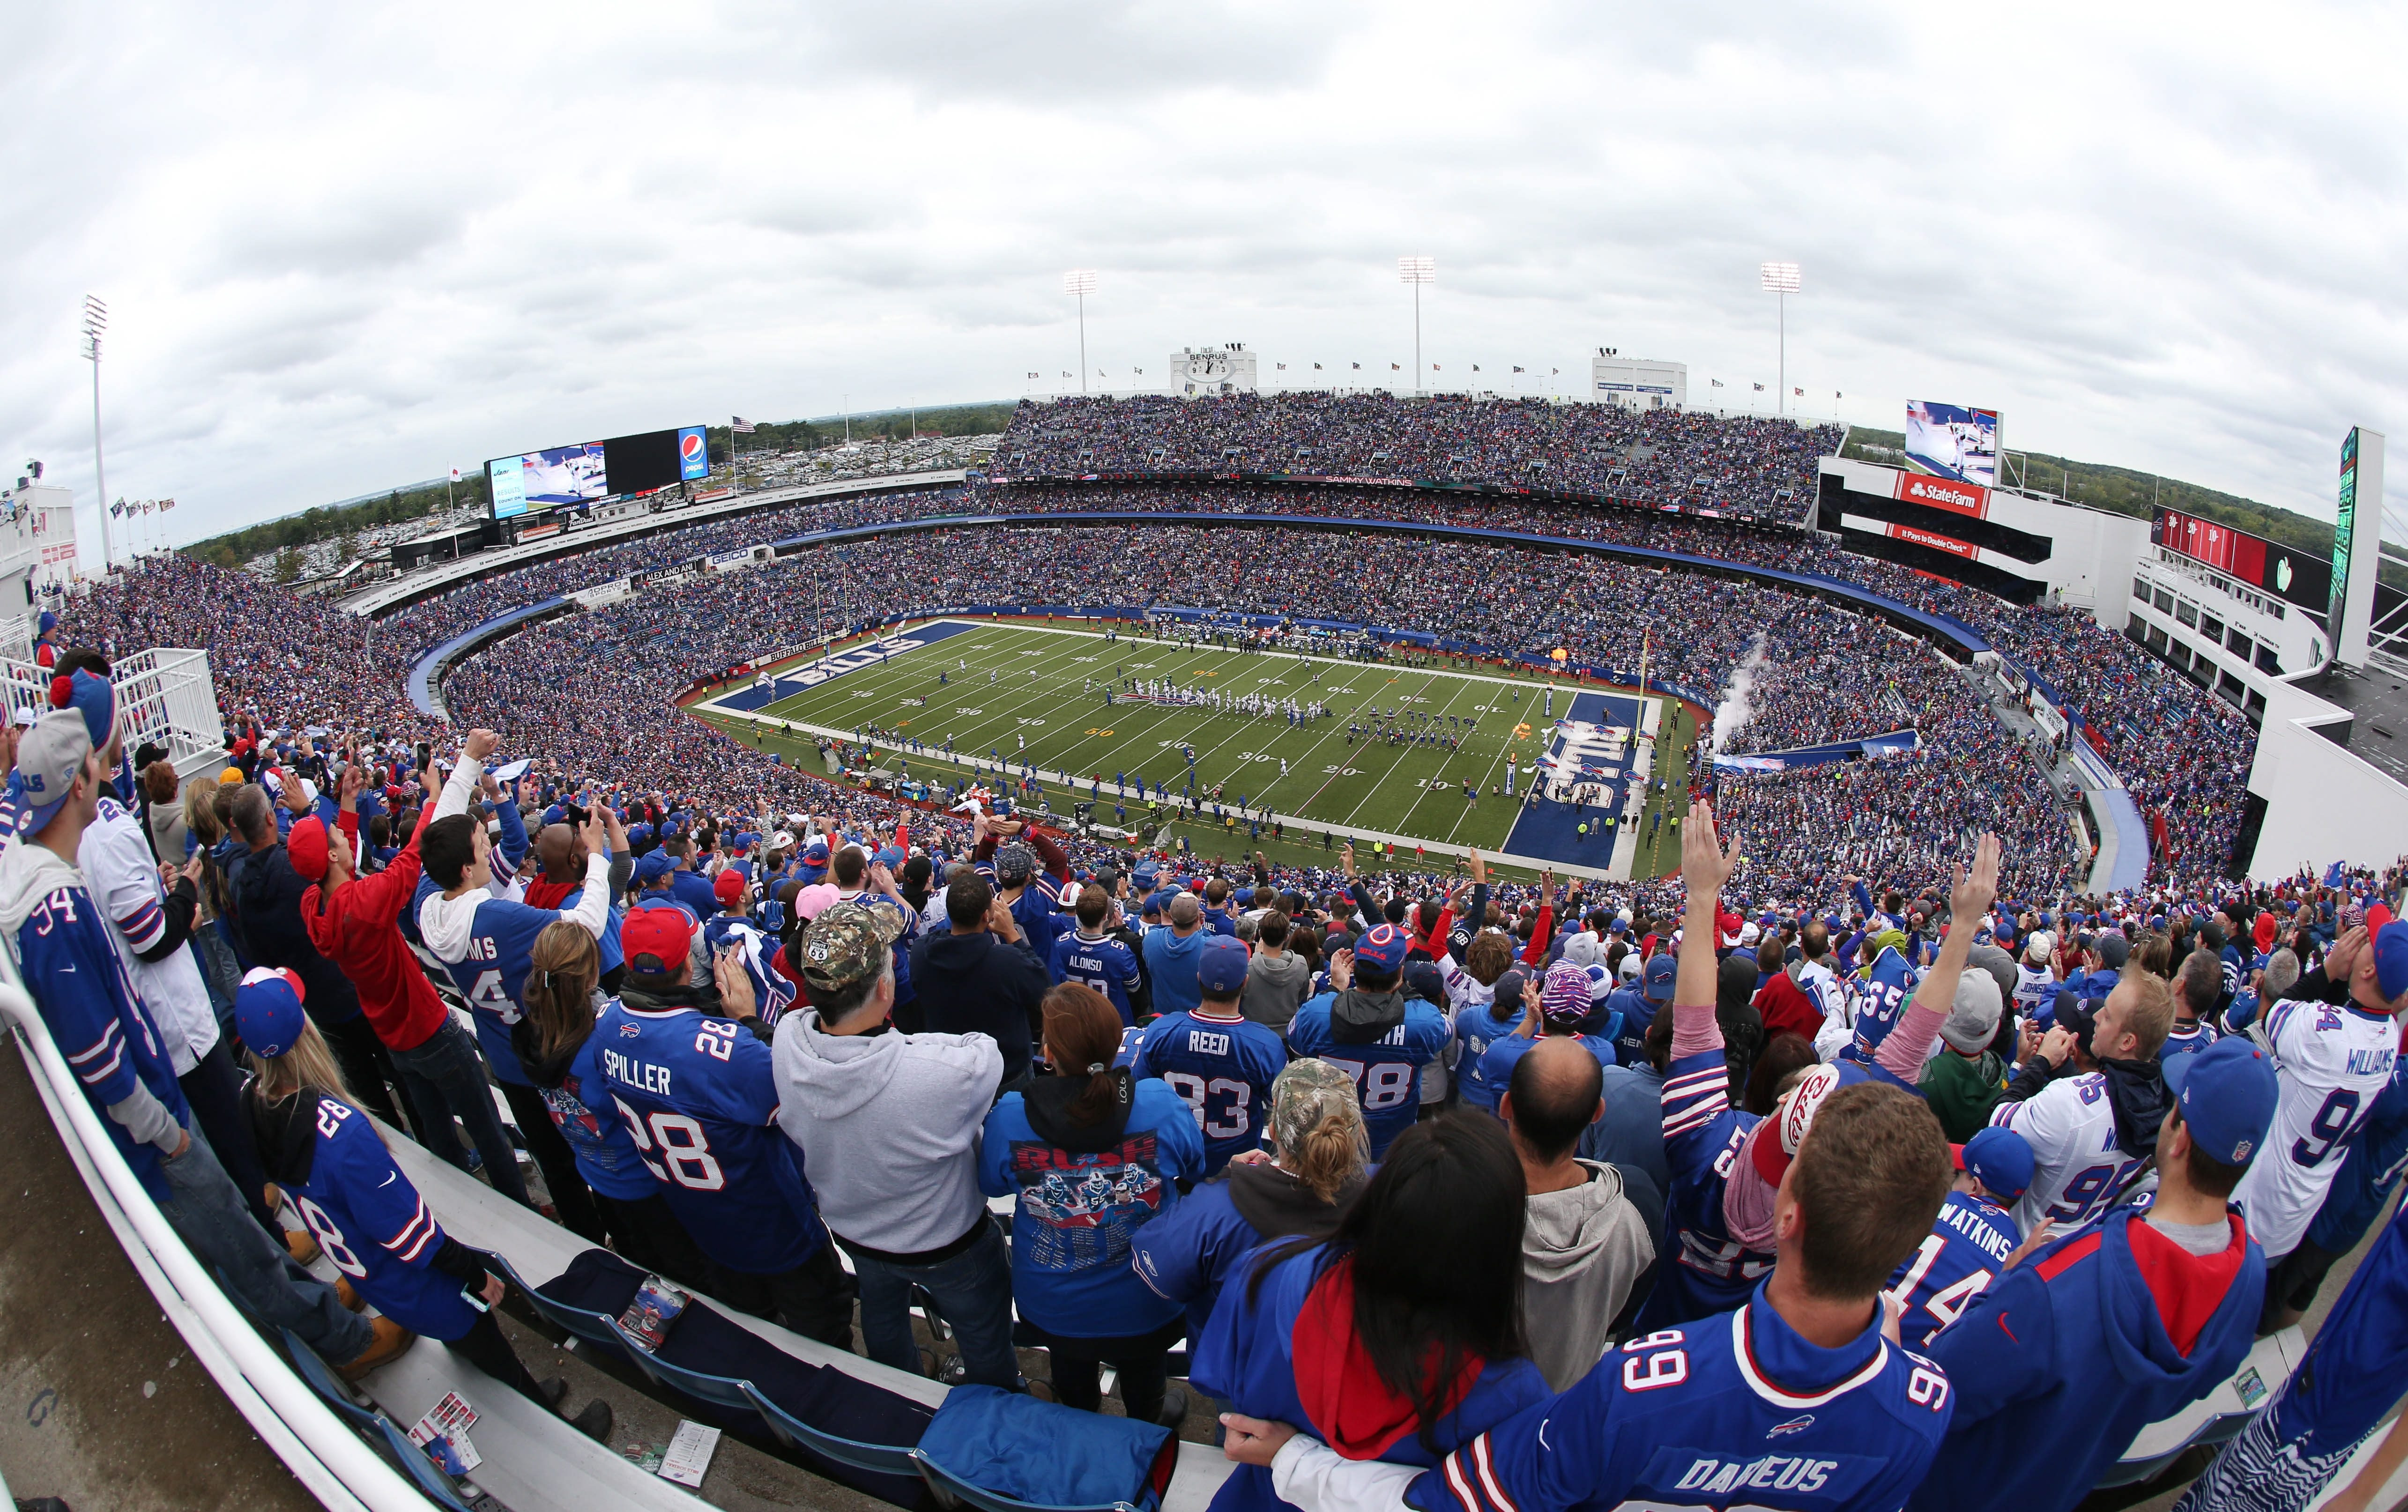 A guide to keeping tabs on the Bills: Listen, watch ... and hope.